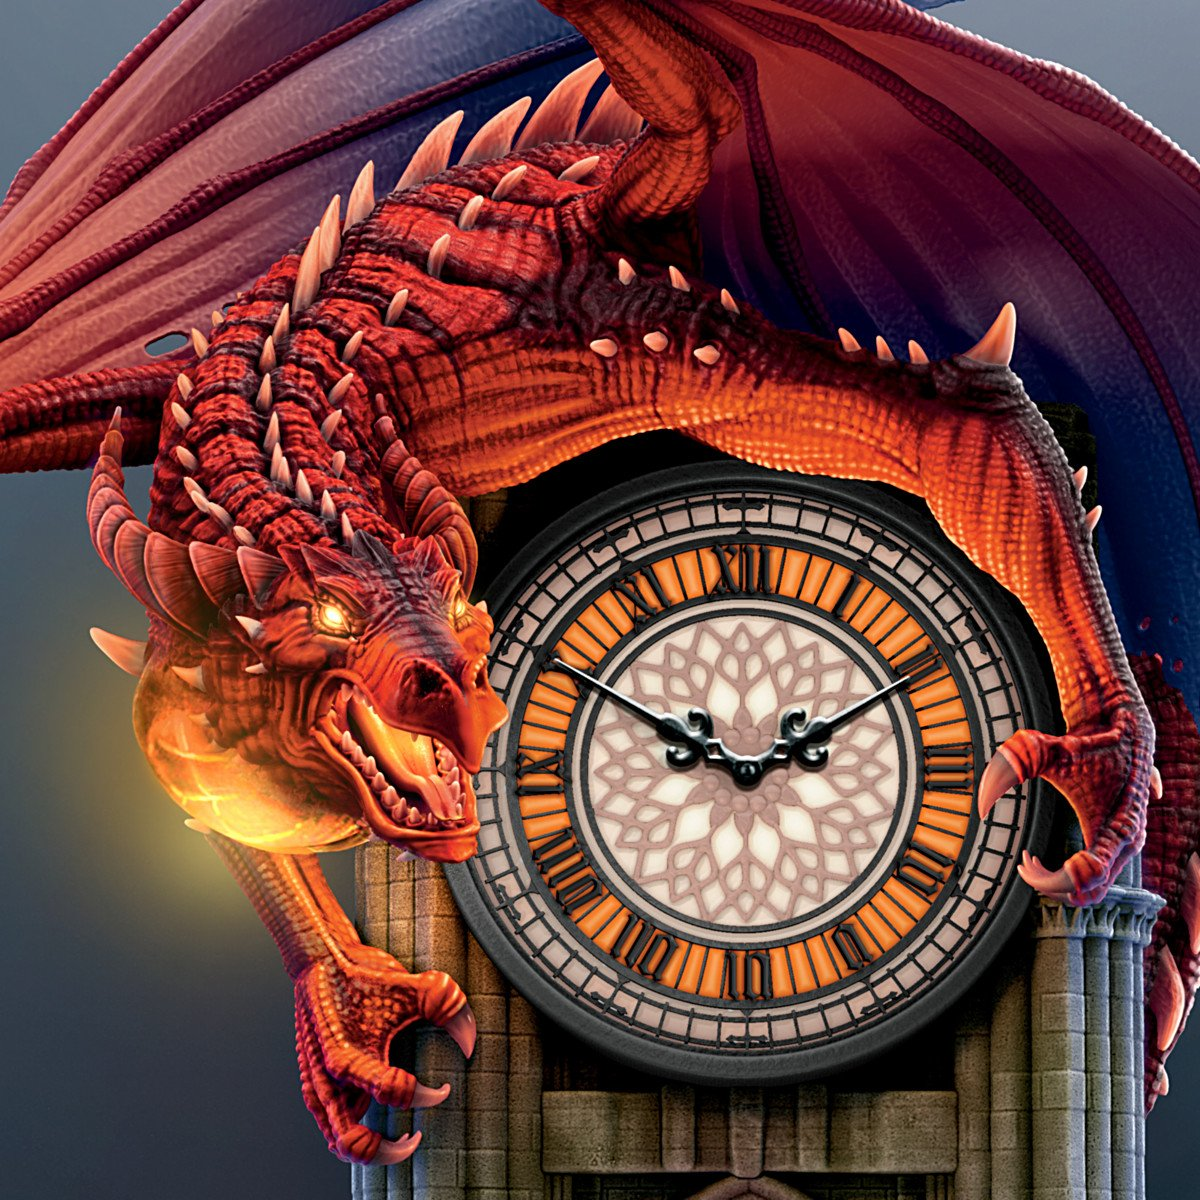 Sculptural Dragon Wall Clock with Gothic Cathedral Case Lights Up and Roars by The Bradford Exchange